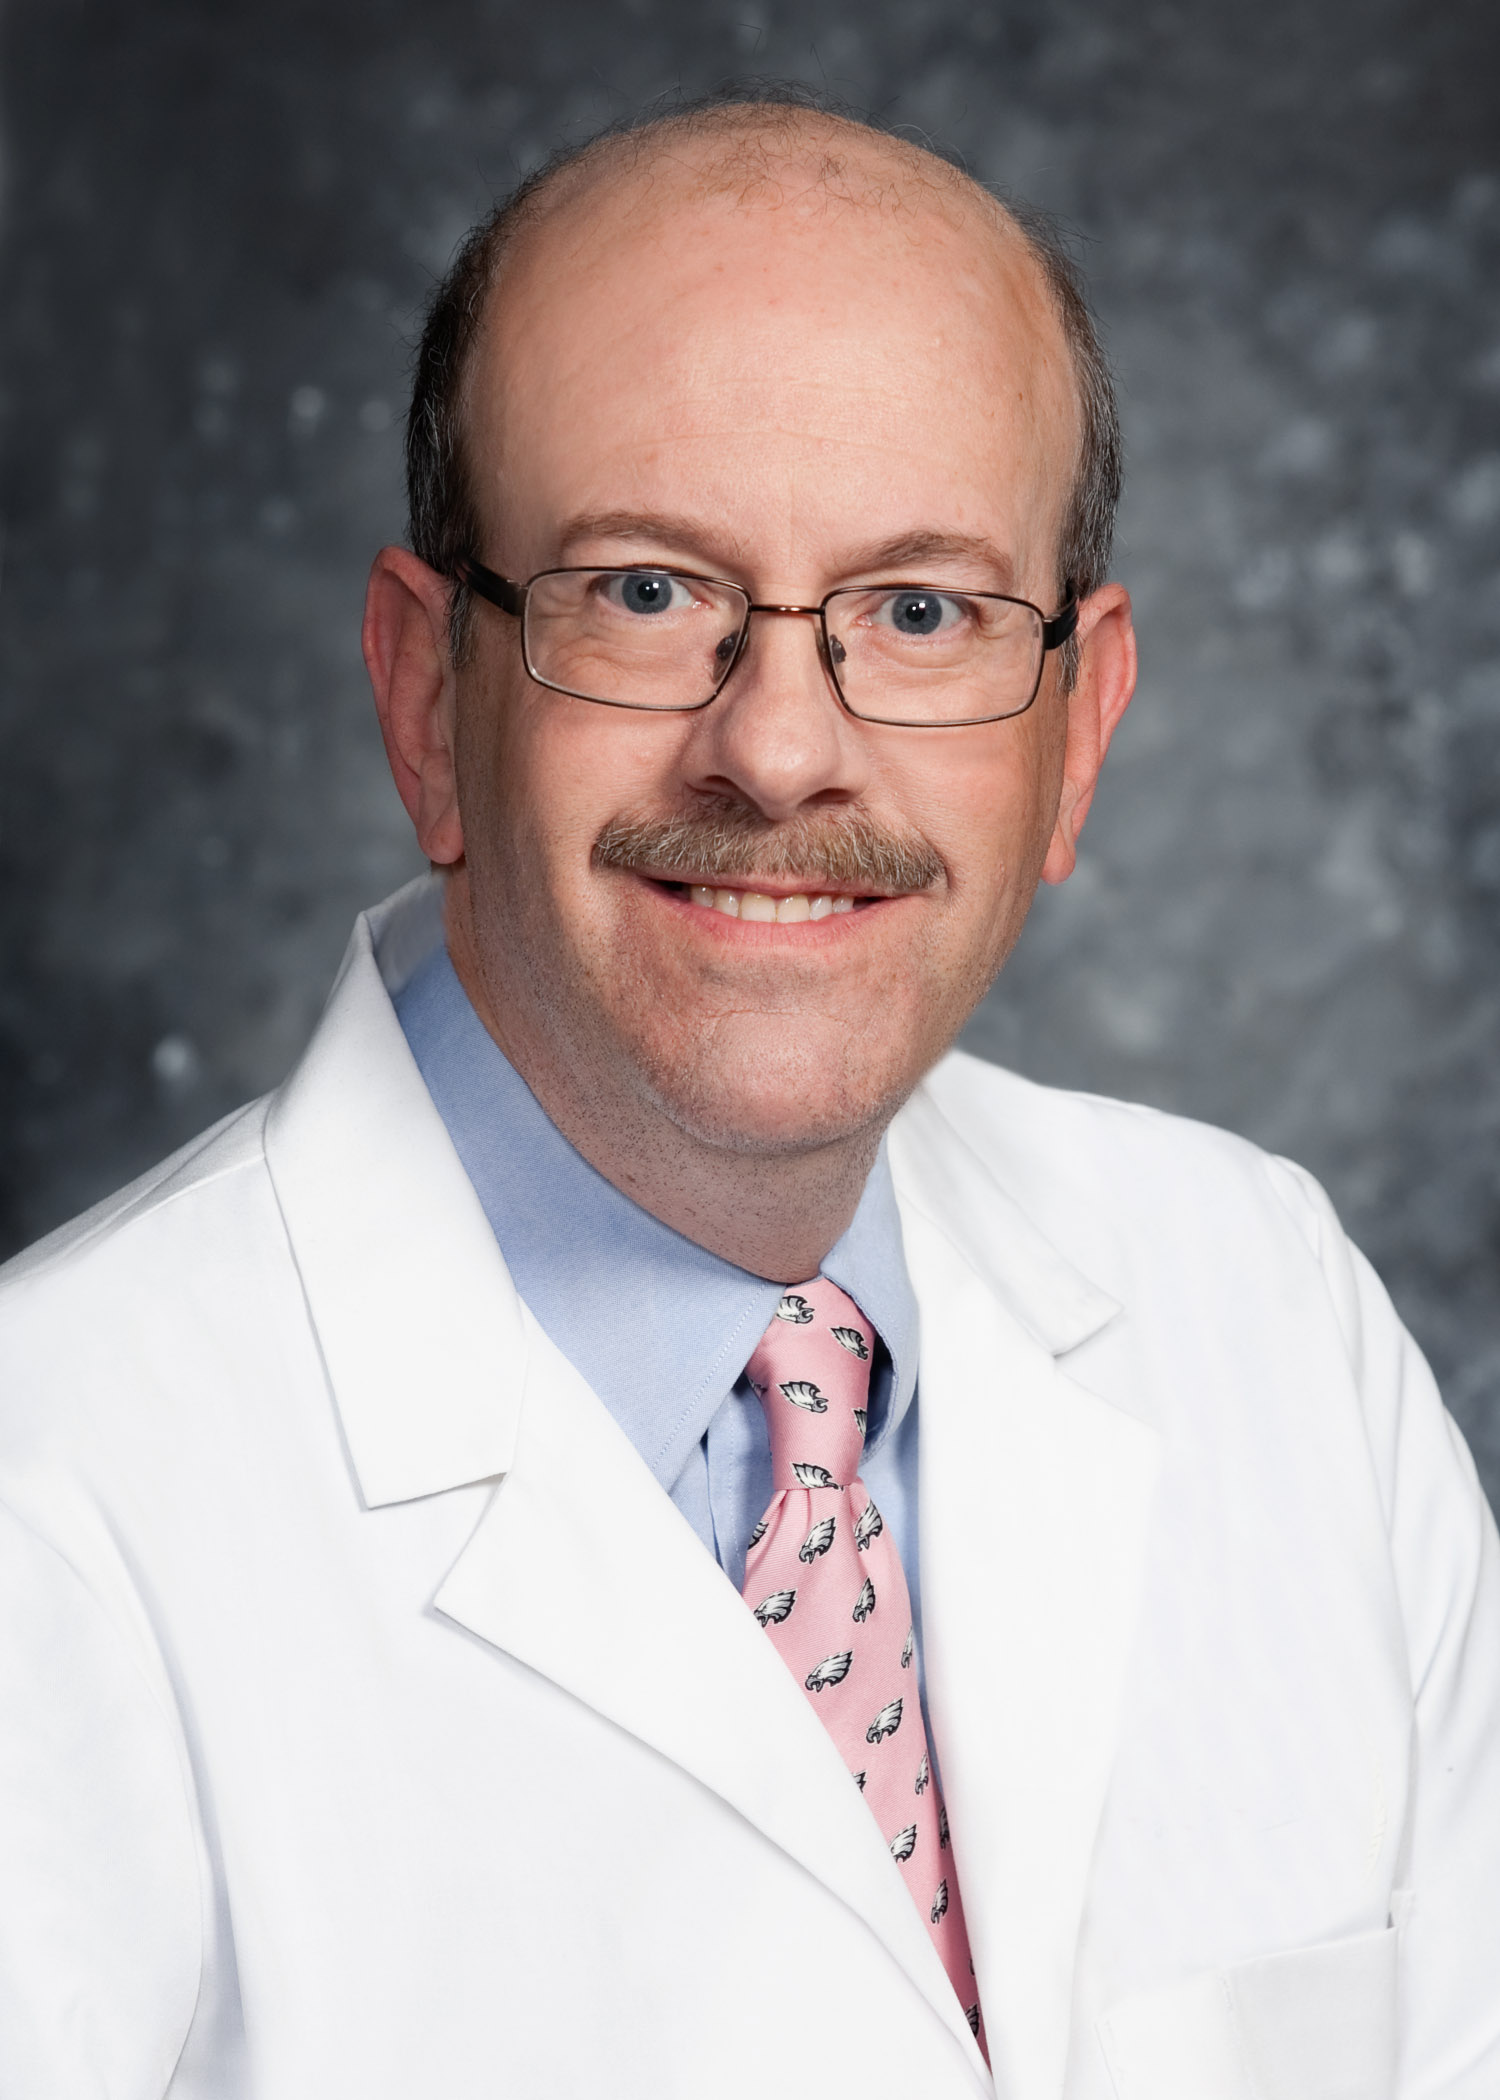 David Zalut, MD